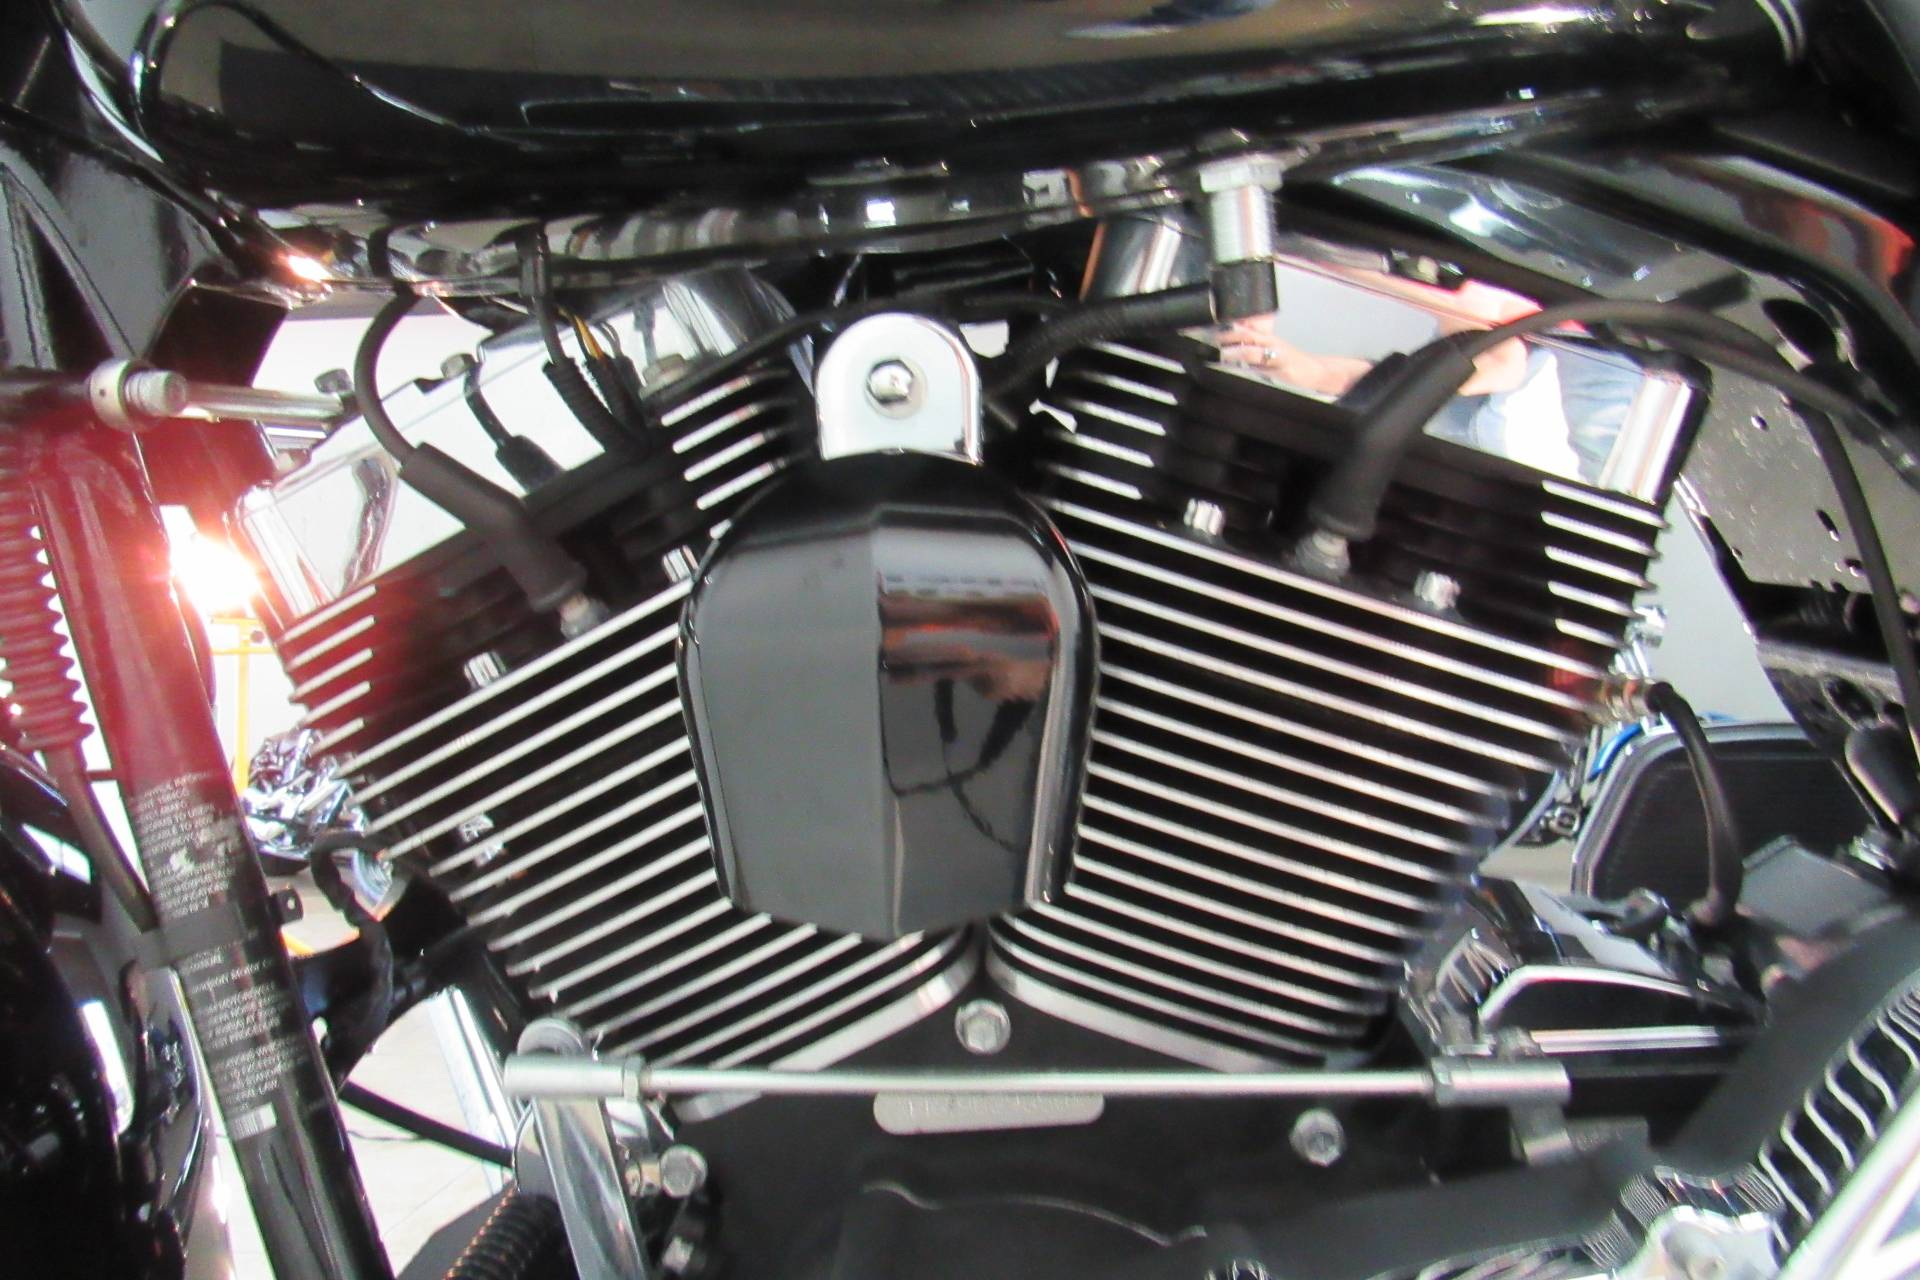 2009 Harley-Davidson Road King® Classic in Temecula, California - Photo 19